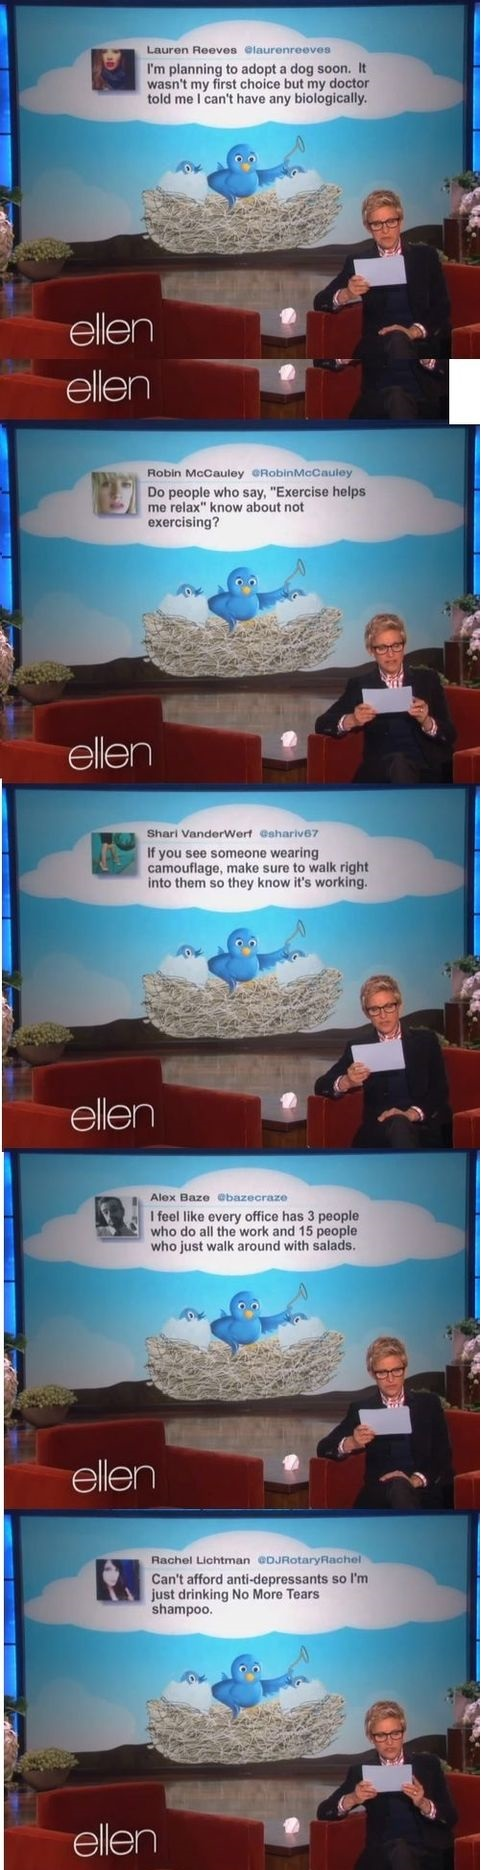 funny-picture-ellen-tweets-compilation